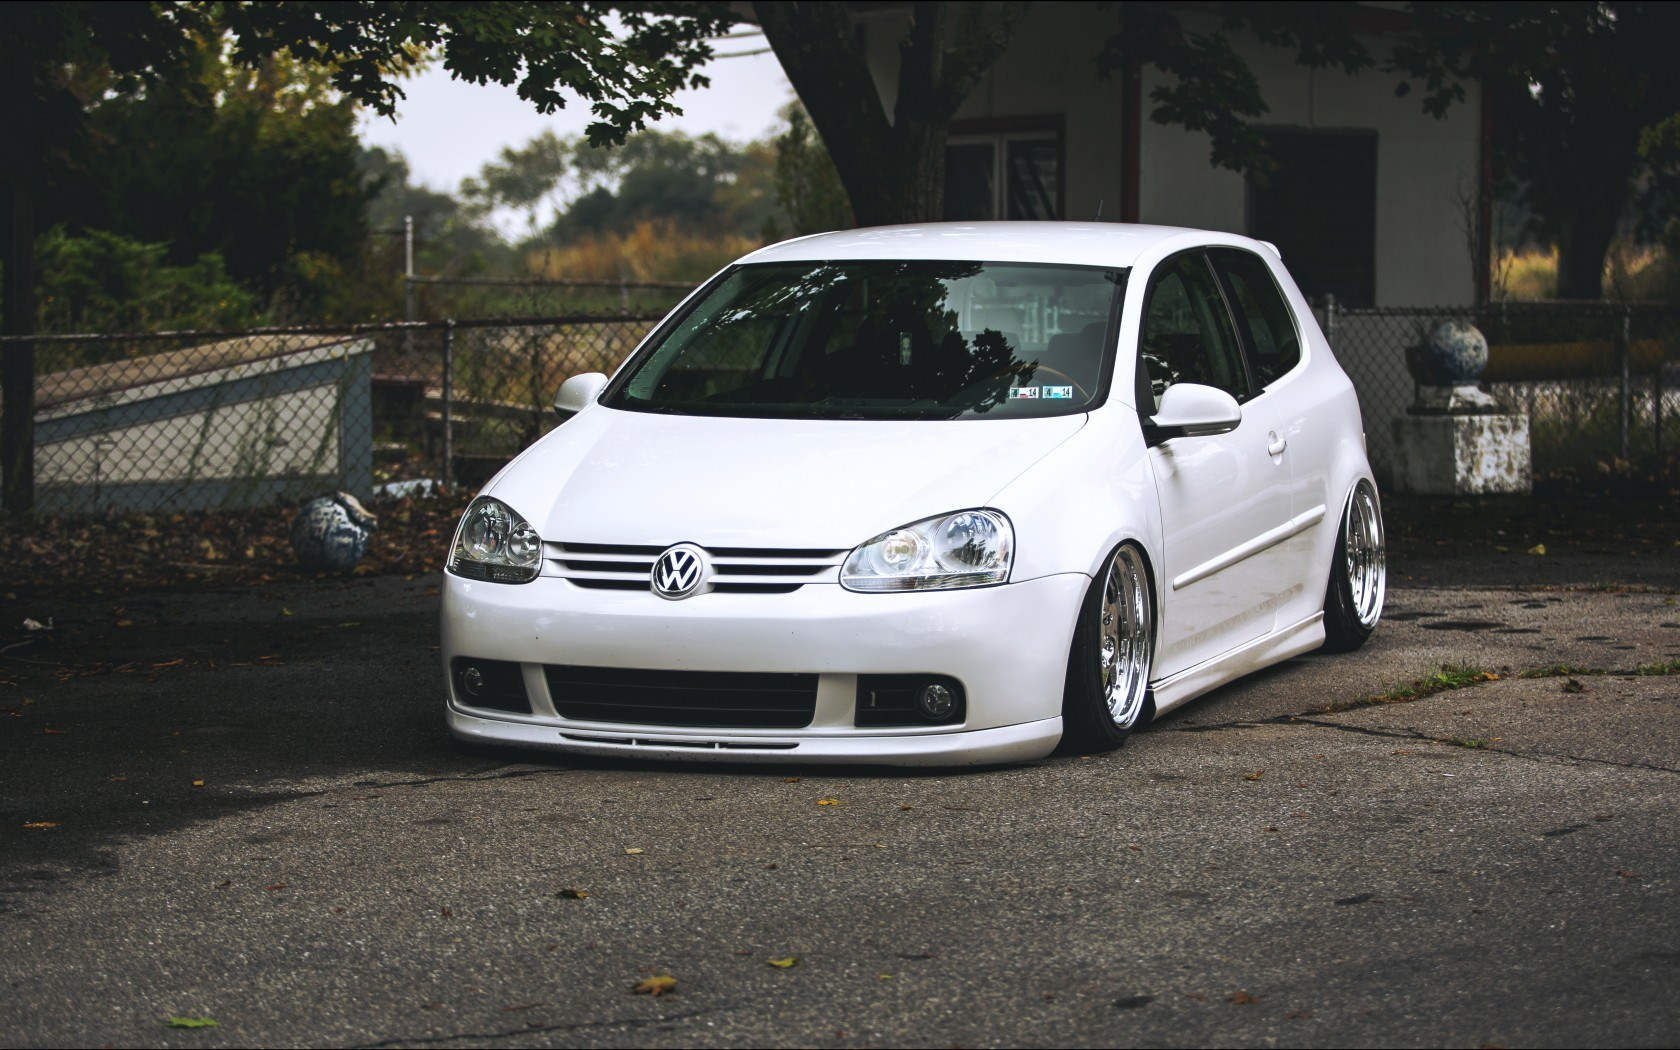 Volkswagen Golf MK5 Tuning Car